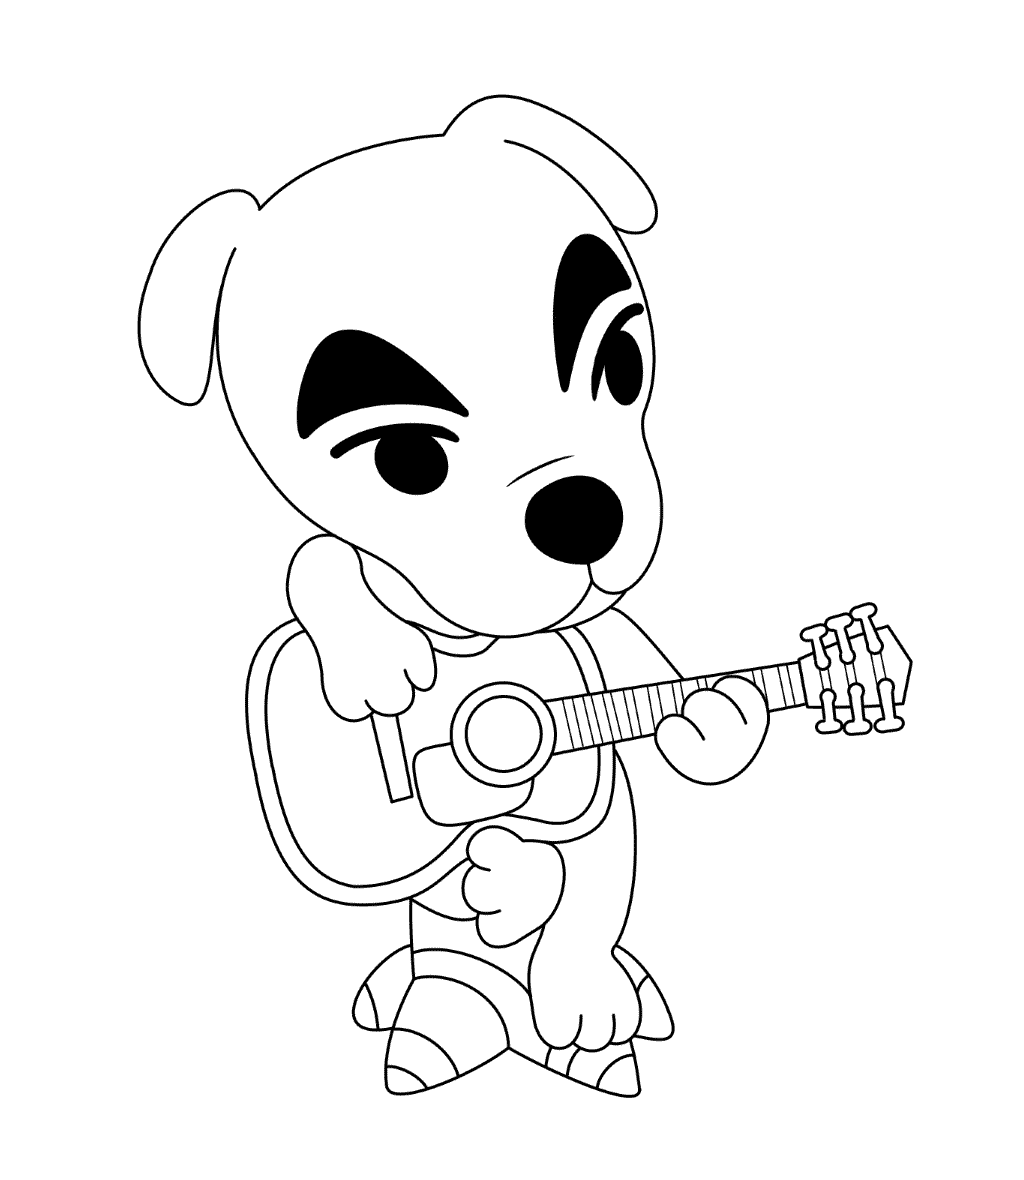 Dog Playing Guitar Coloring Page